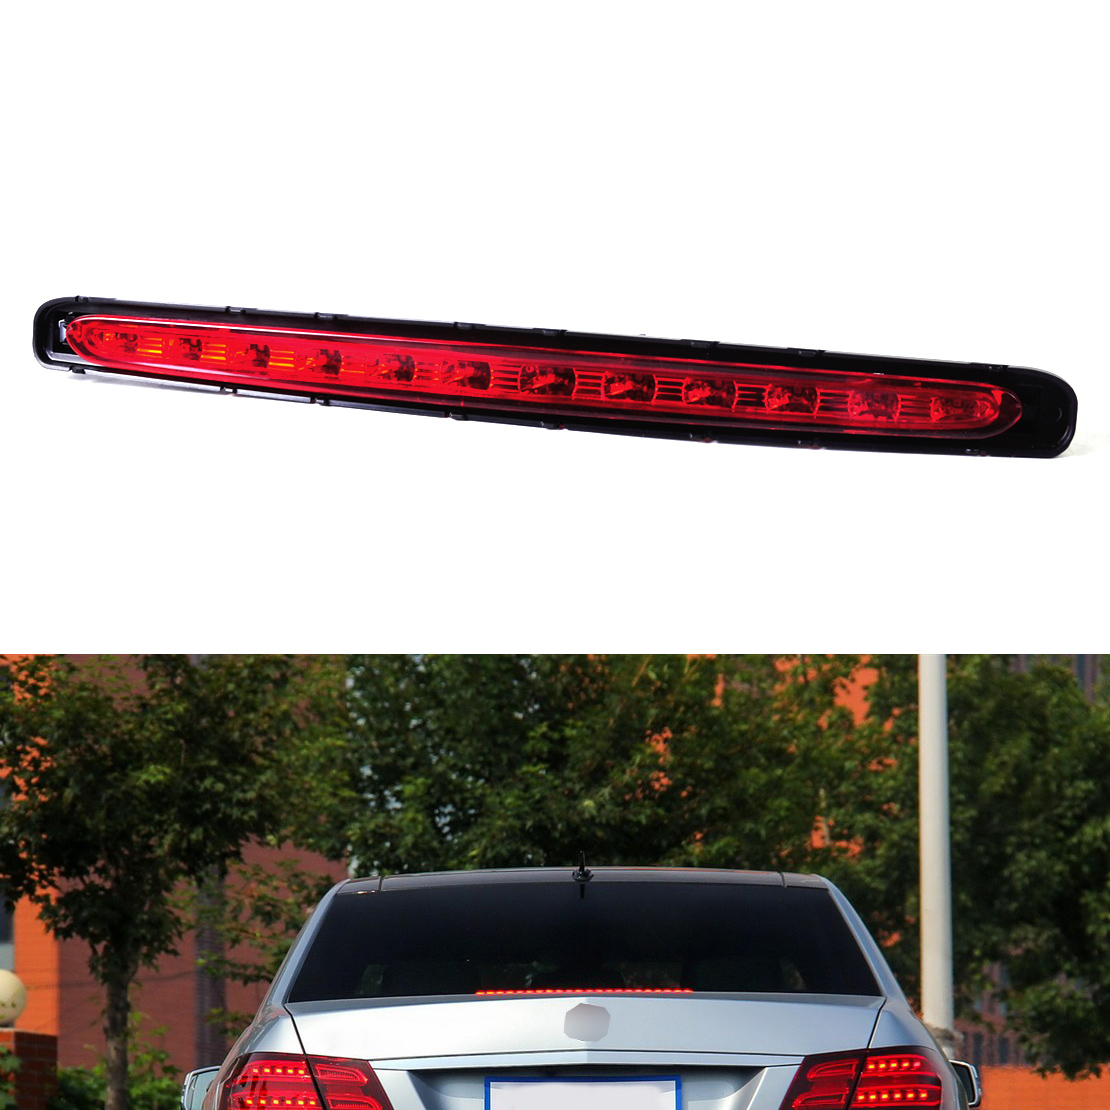 DWCX 2118201556 Car Rear LED Third Stop Brake Light Lamp for Mercedes Benz E Class W211 2003 2004 2005 2006 2007 2008 2009 car truck led tail rear bumper reflector light brake stop warining lamp for mercedes benz e class w203 sedan